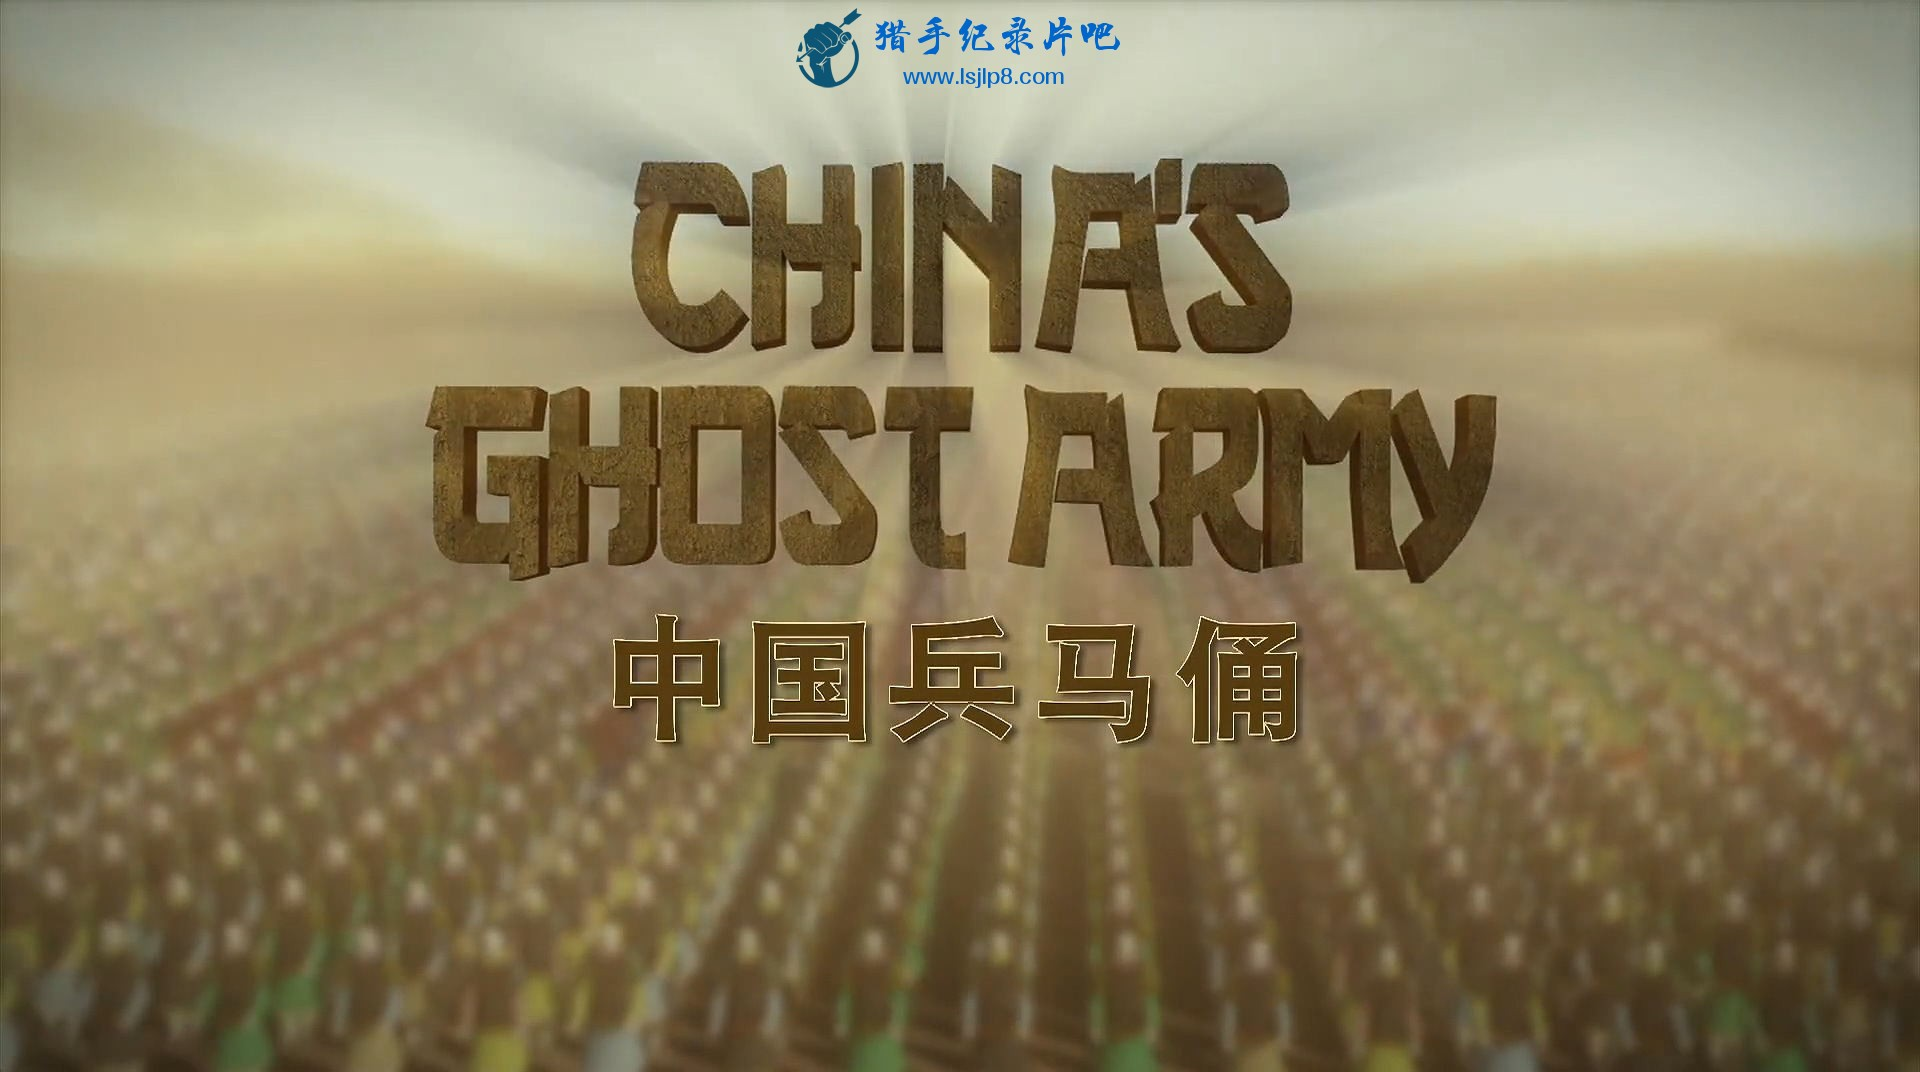 China's Ghost Army.jpg